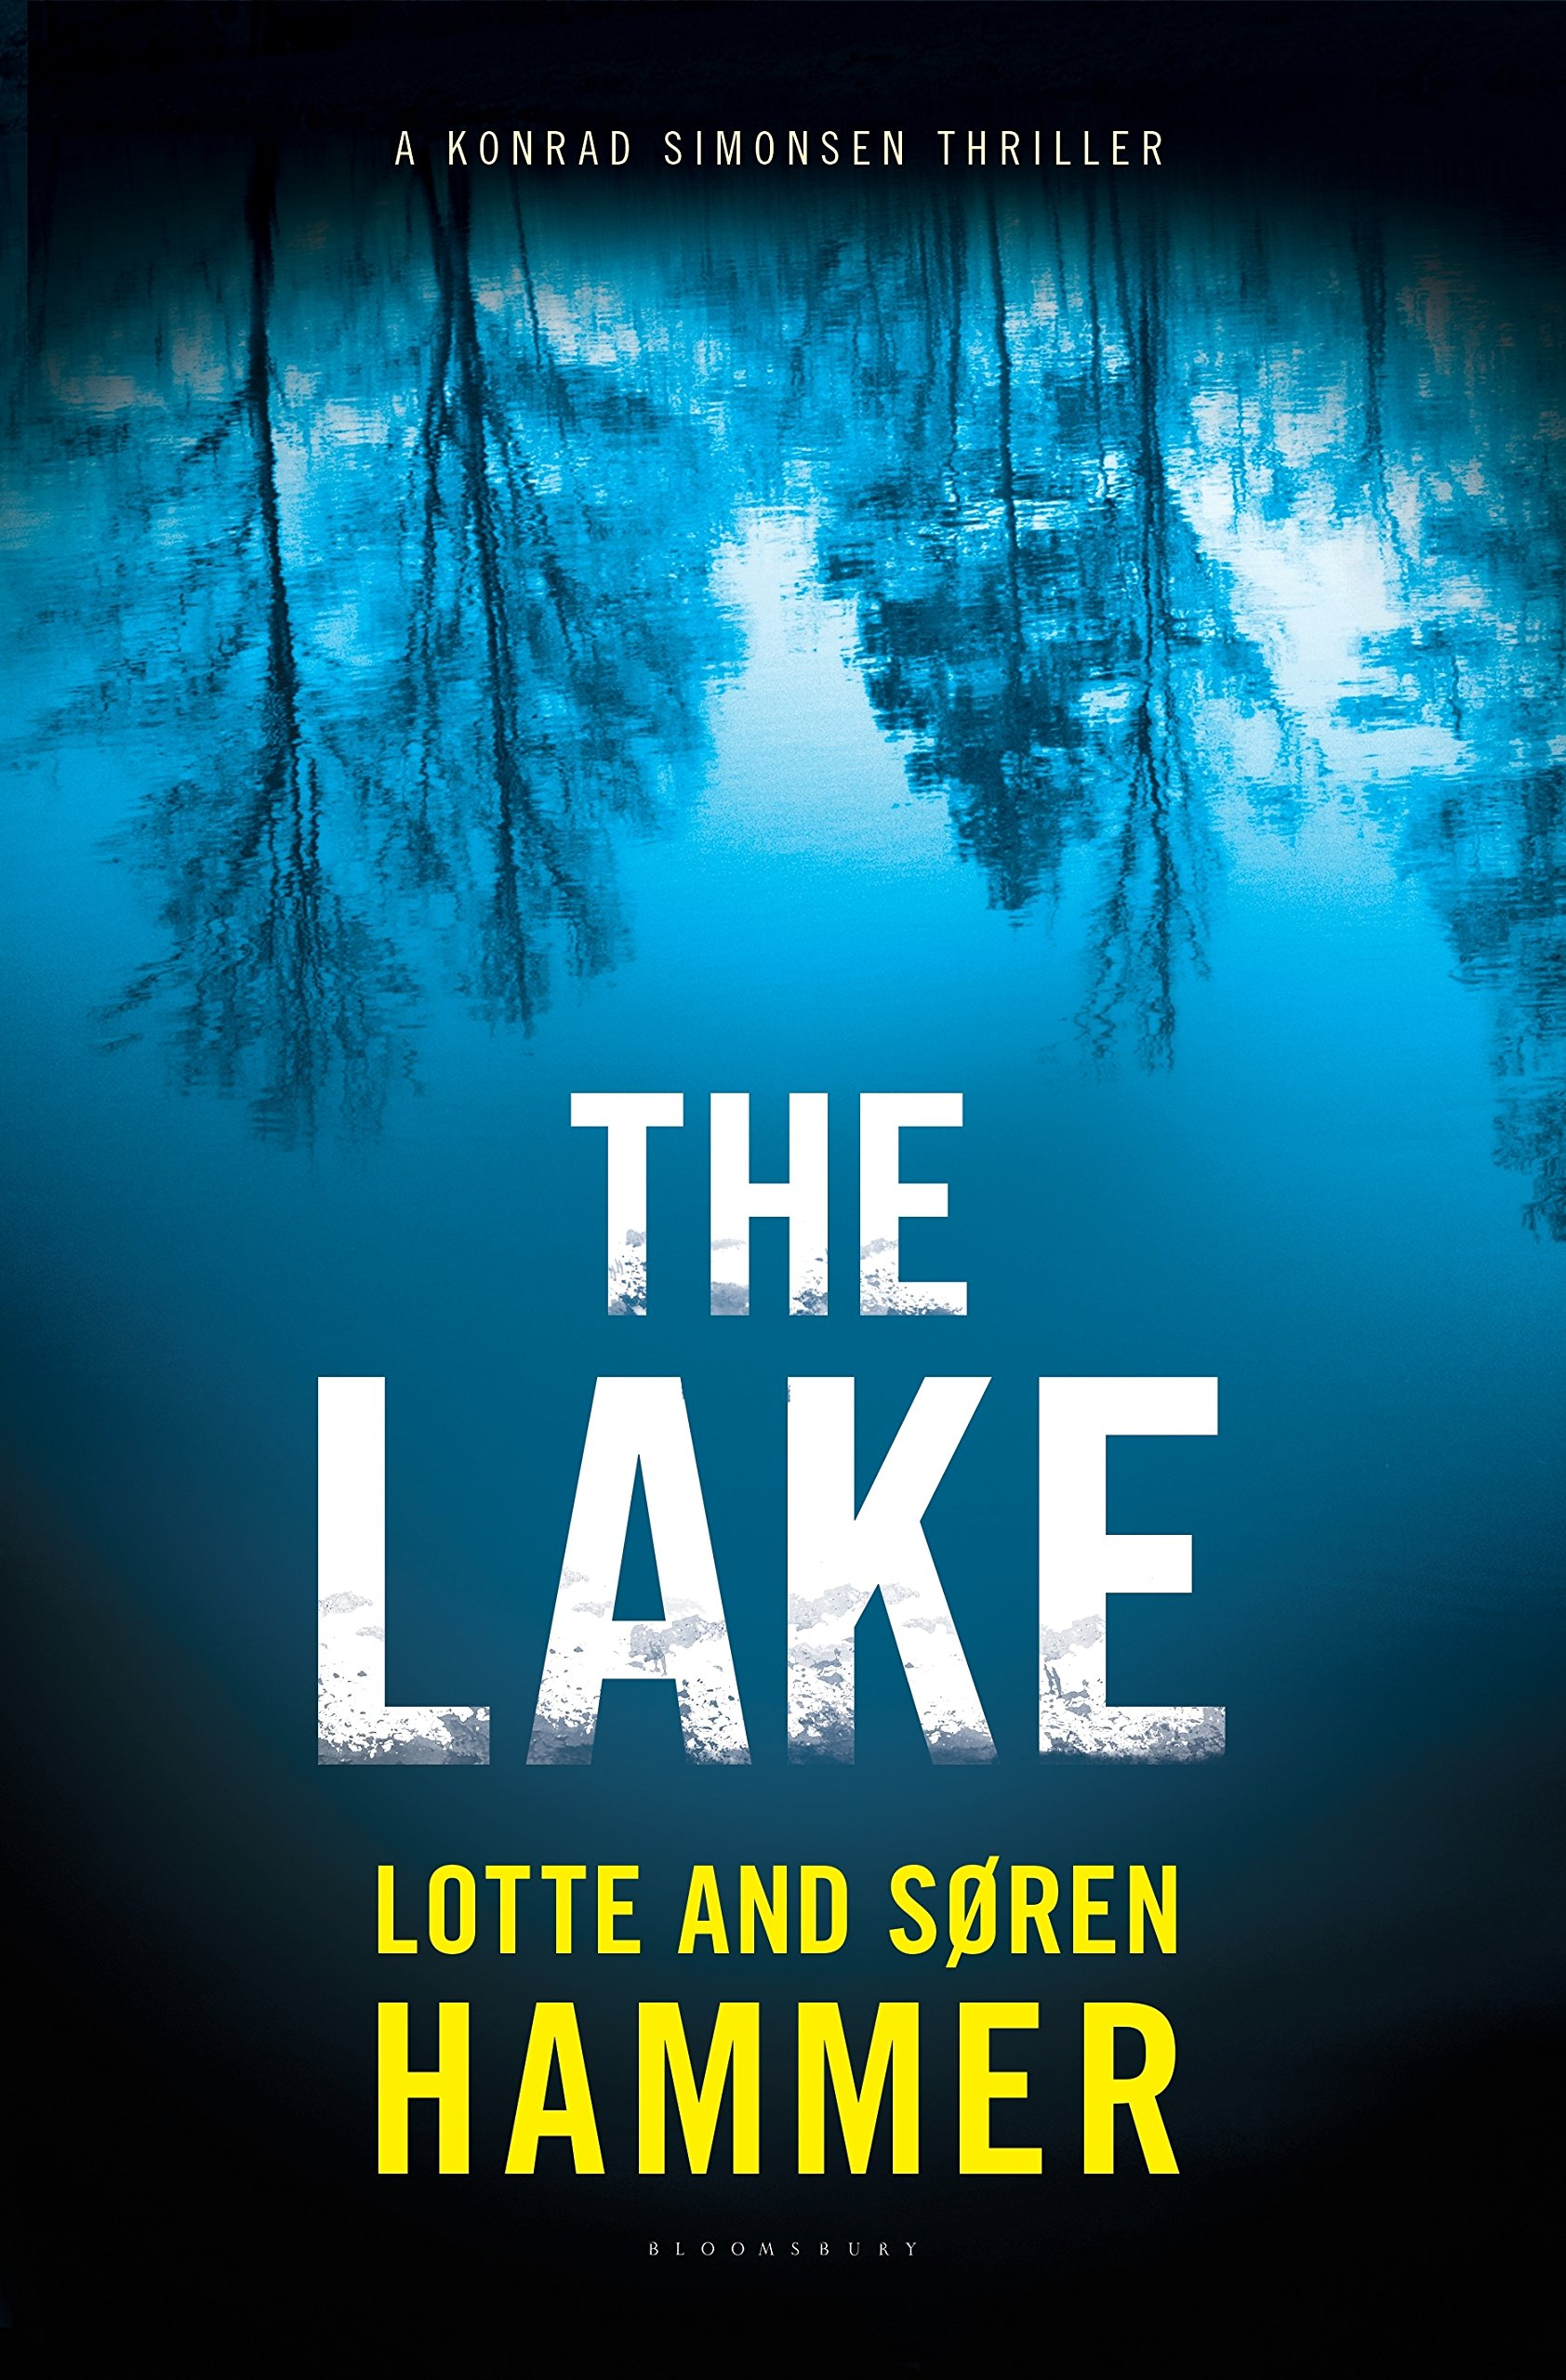 The Lake (A Konrad Simonsen Thriller)